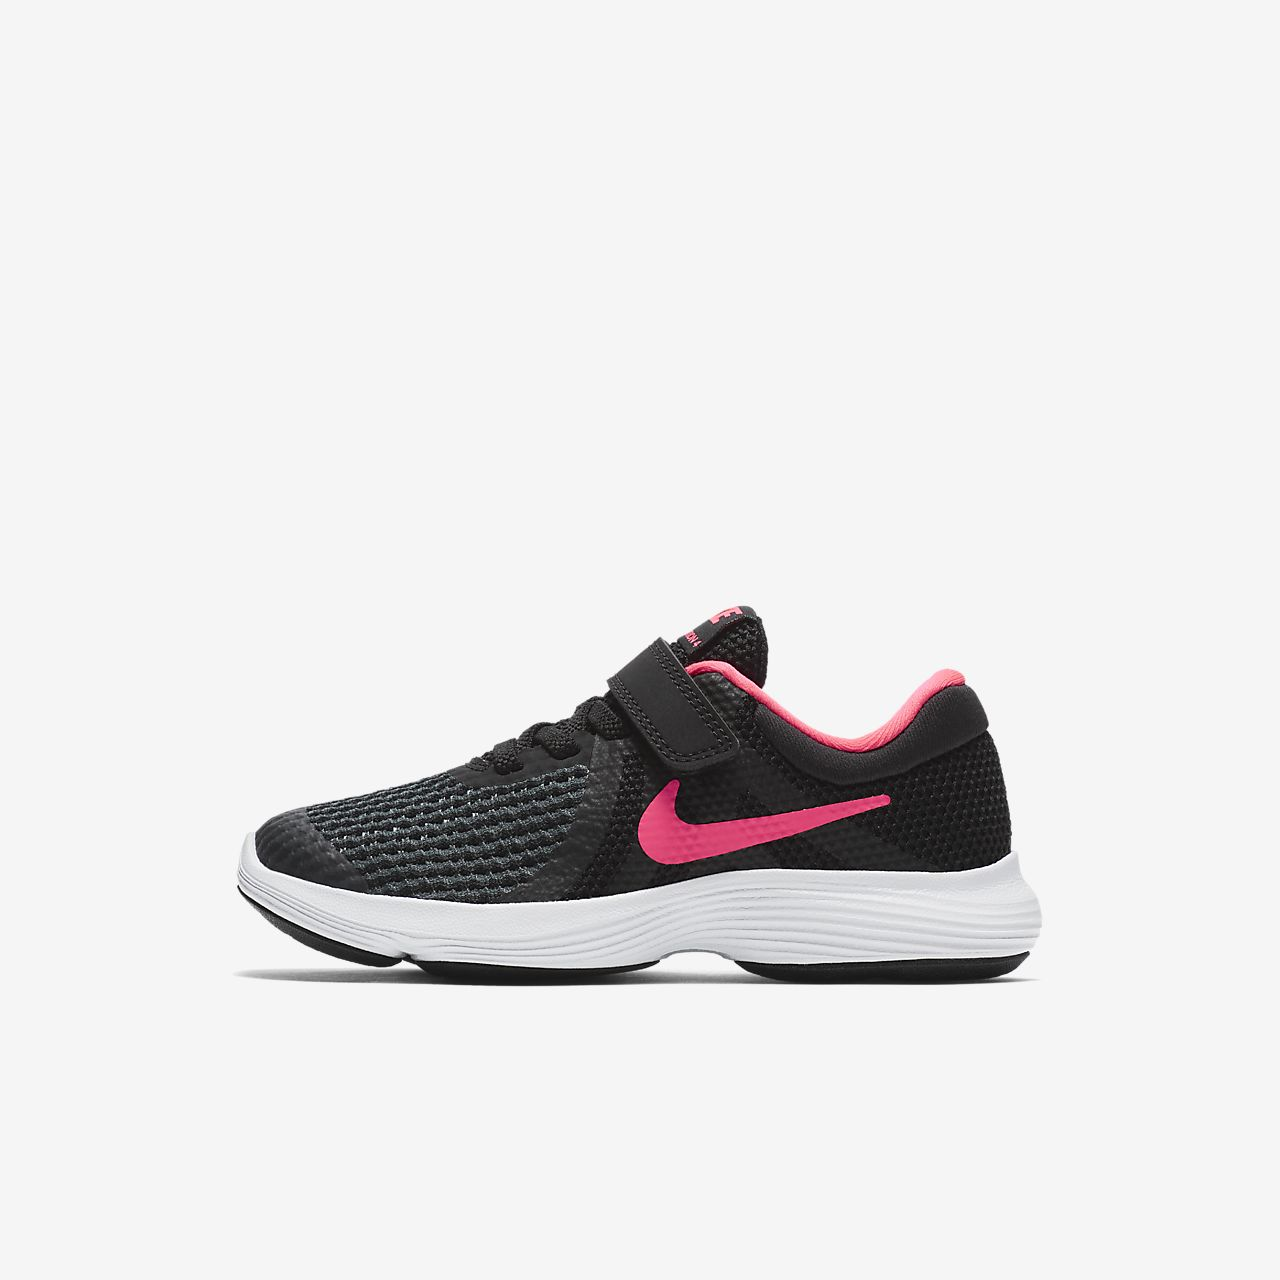 b650088c1d890 Nike Revolution 4 Younger Kids  Shoe. Nike.com AU